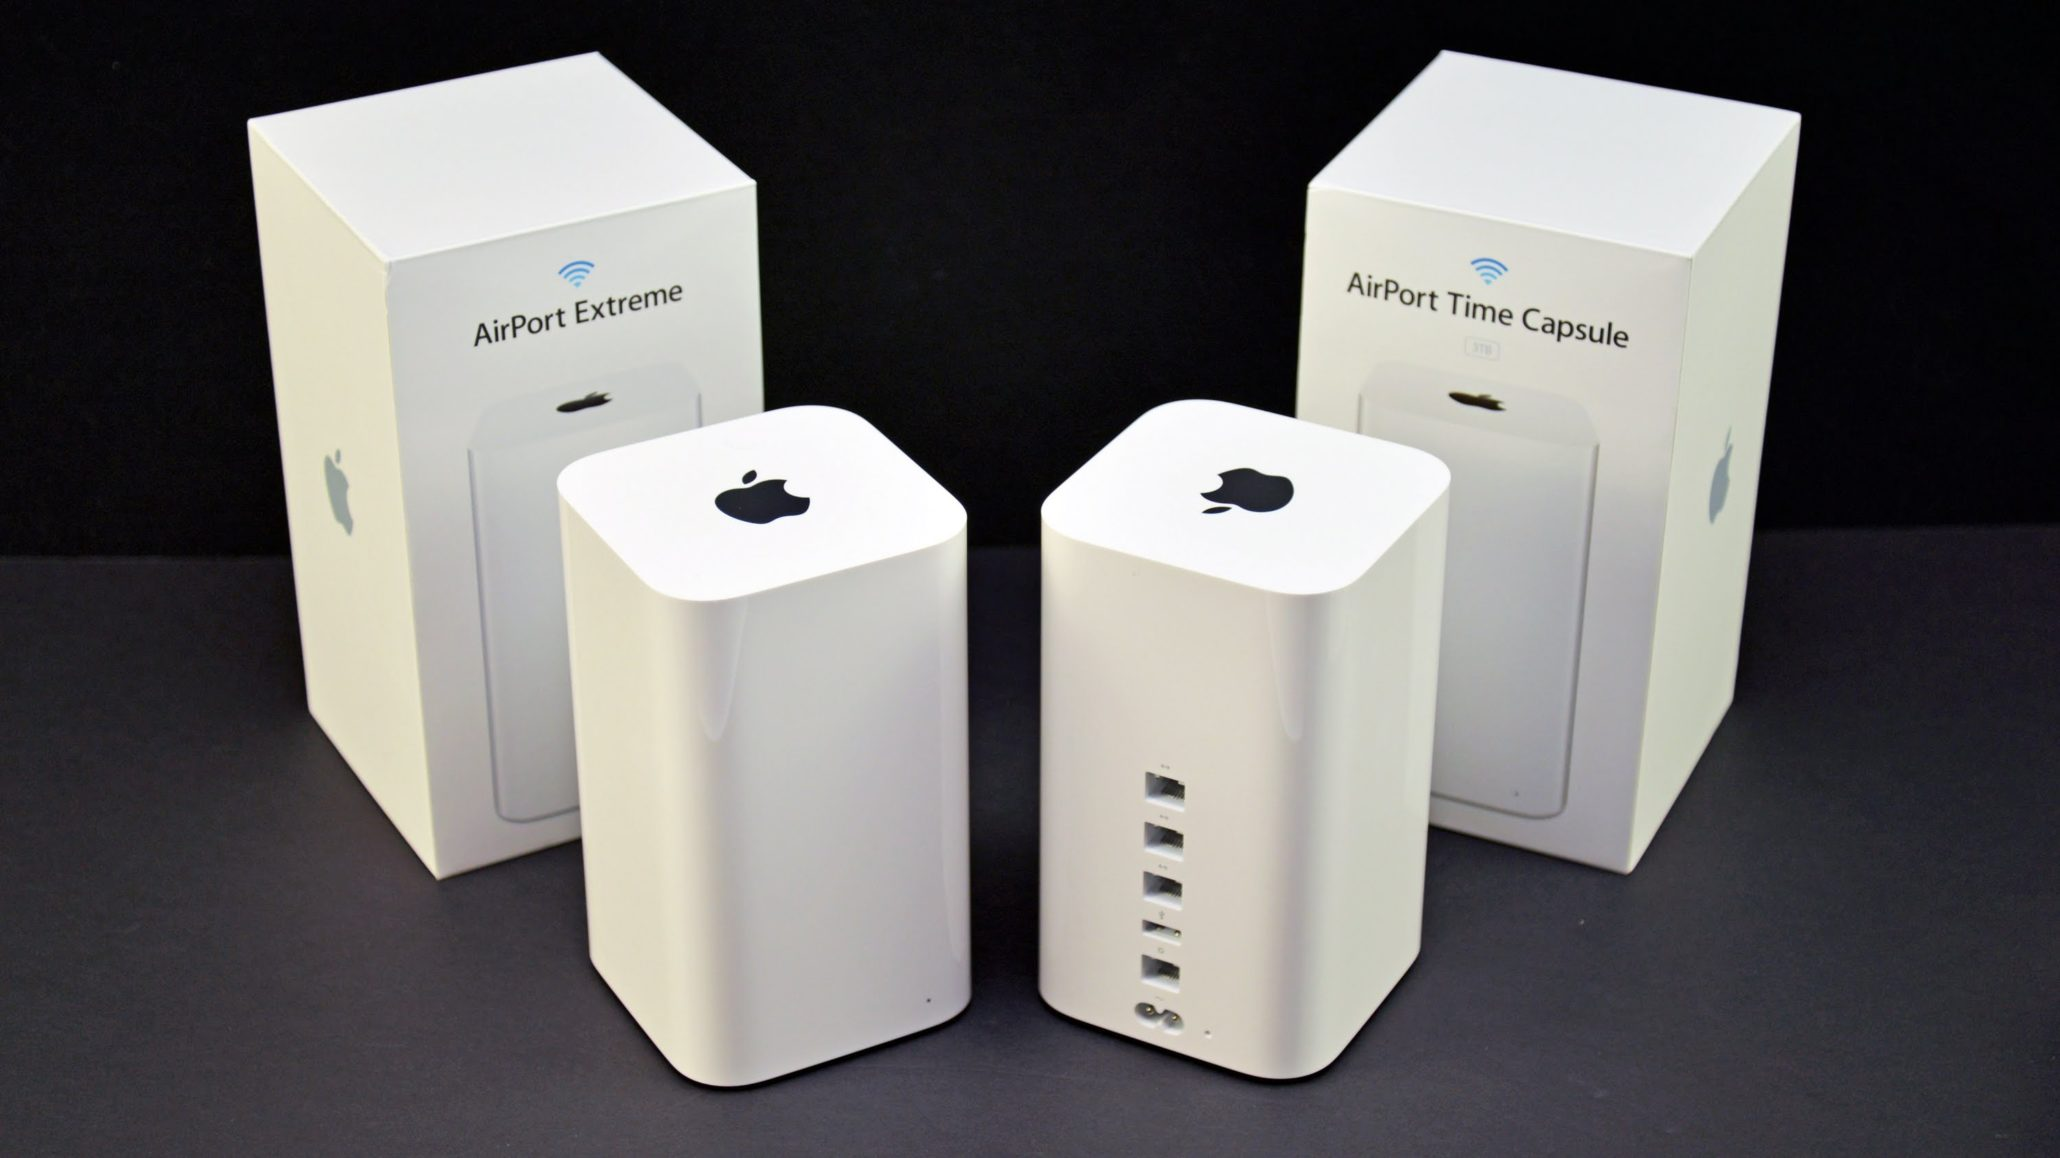 The Apple AirPort Extreme